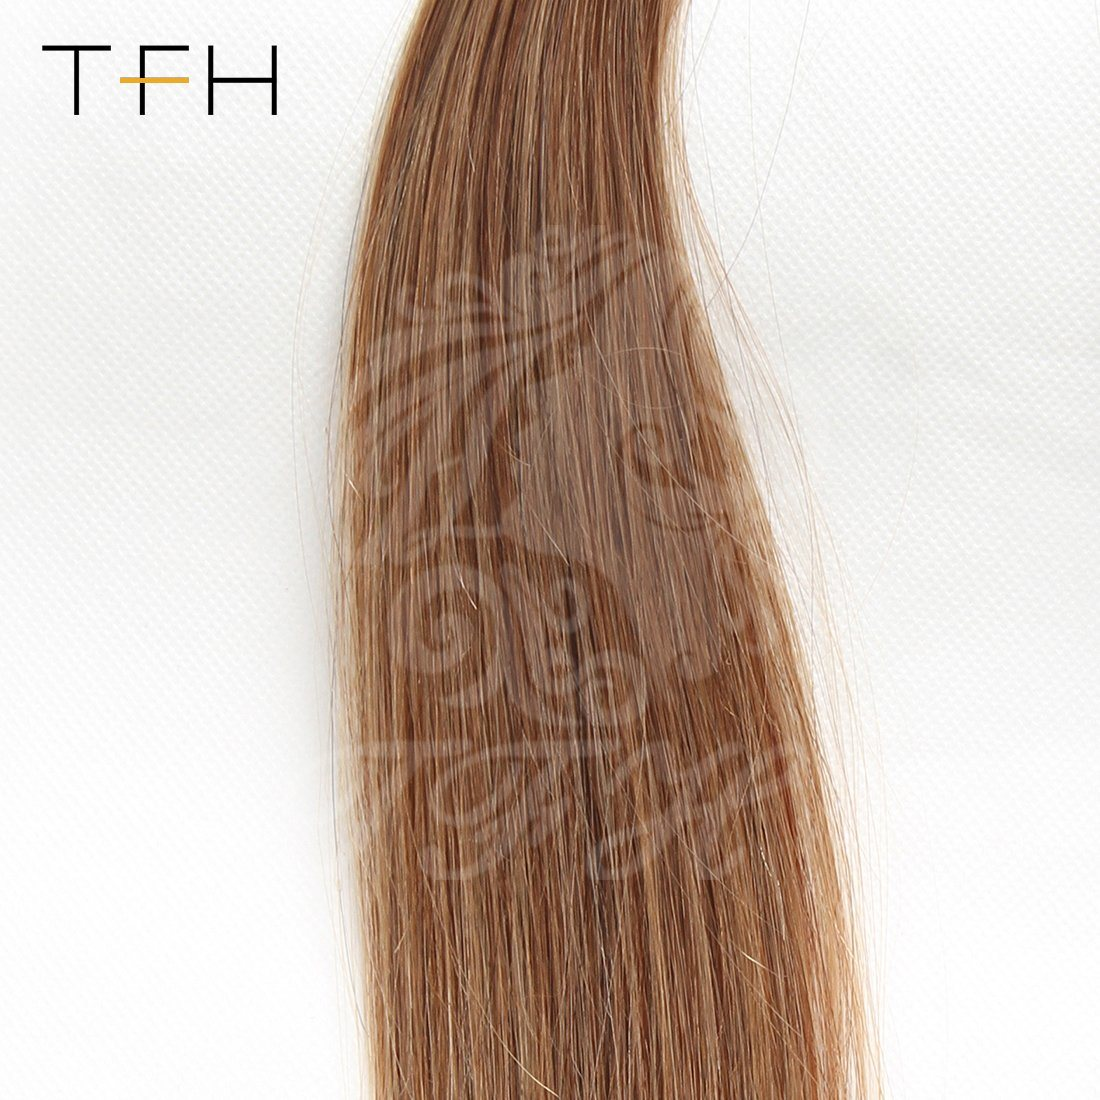 China 1gstrand Chestnut Brown 8 Stick Hair Extensions 20inch I Tip